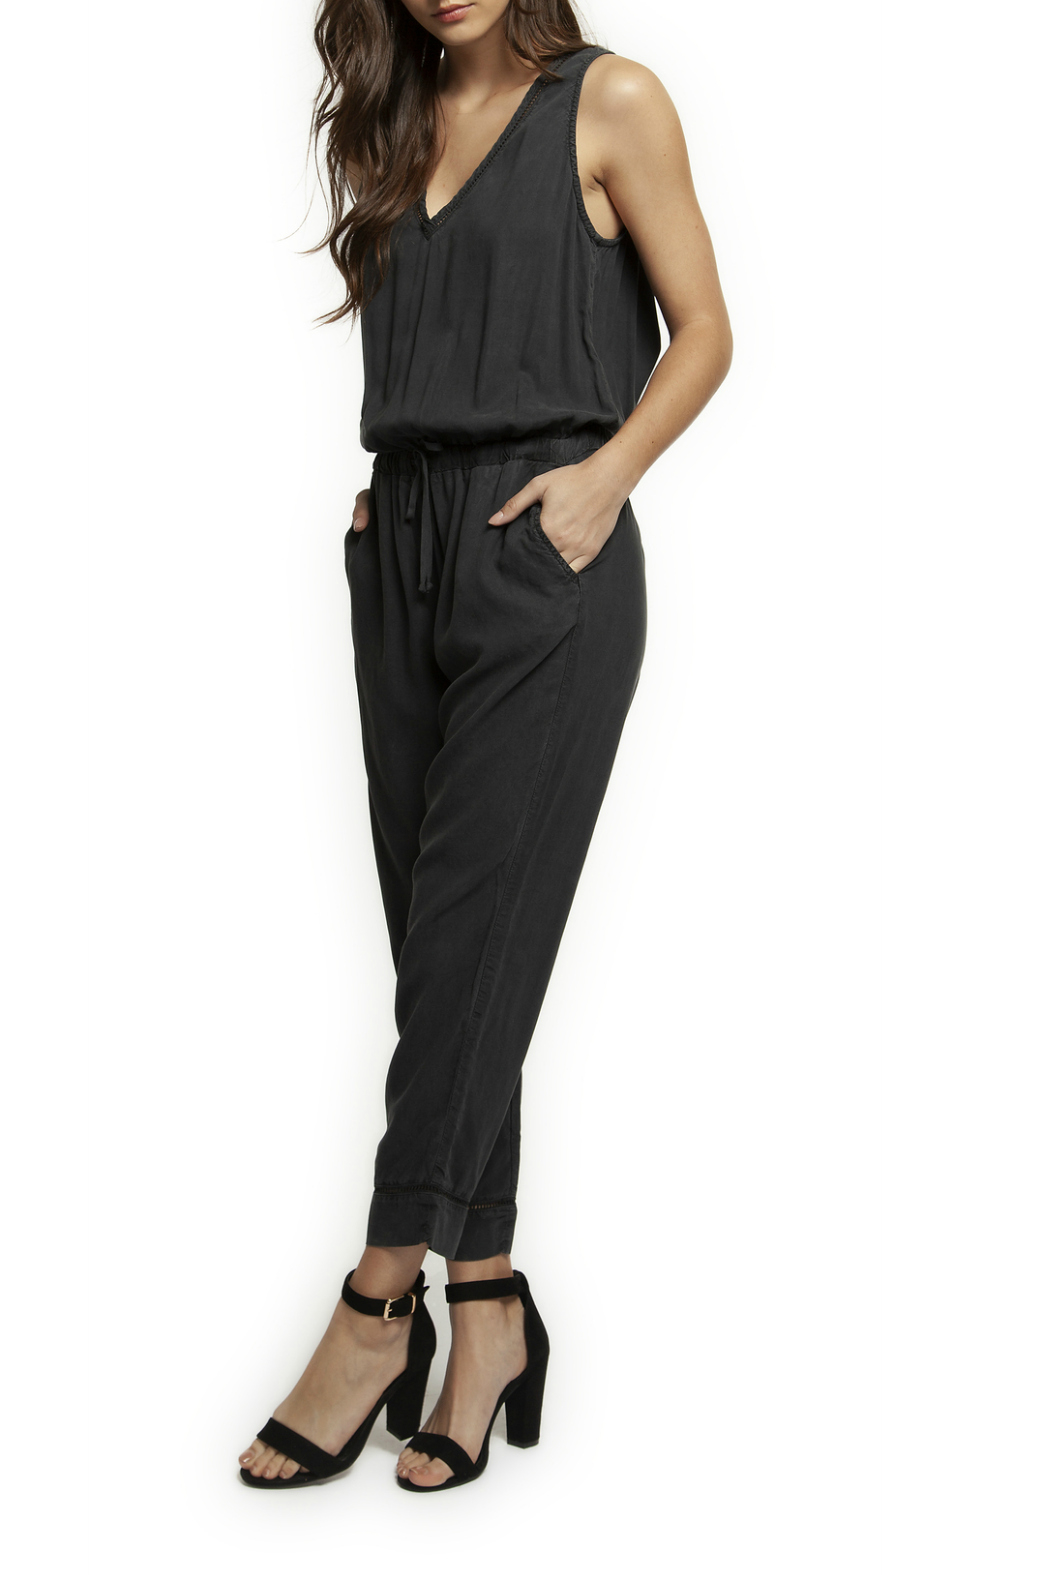 7d023f5cdc2cc Dex V-Neck Tank Jumpsuit from Texas by y i clothing boutique ...